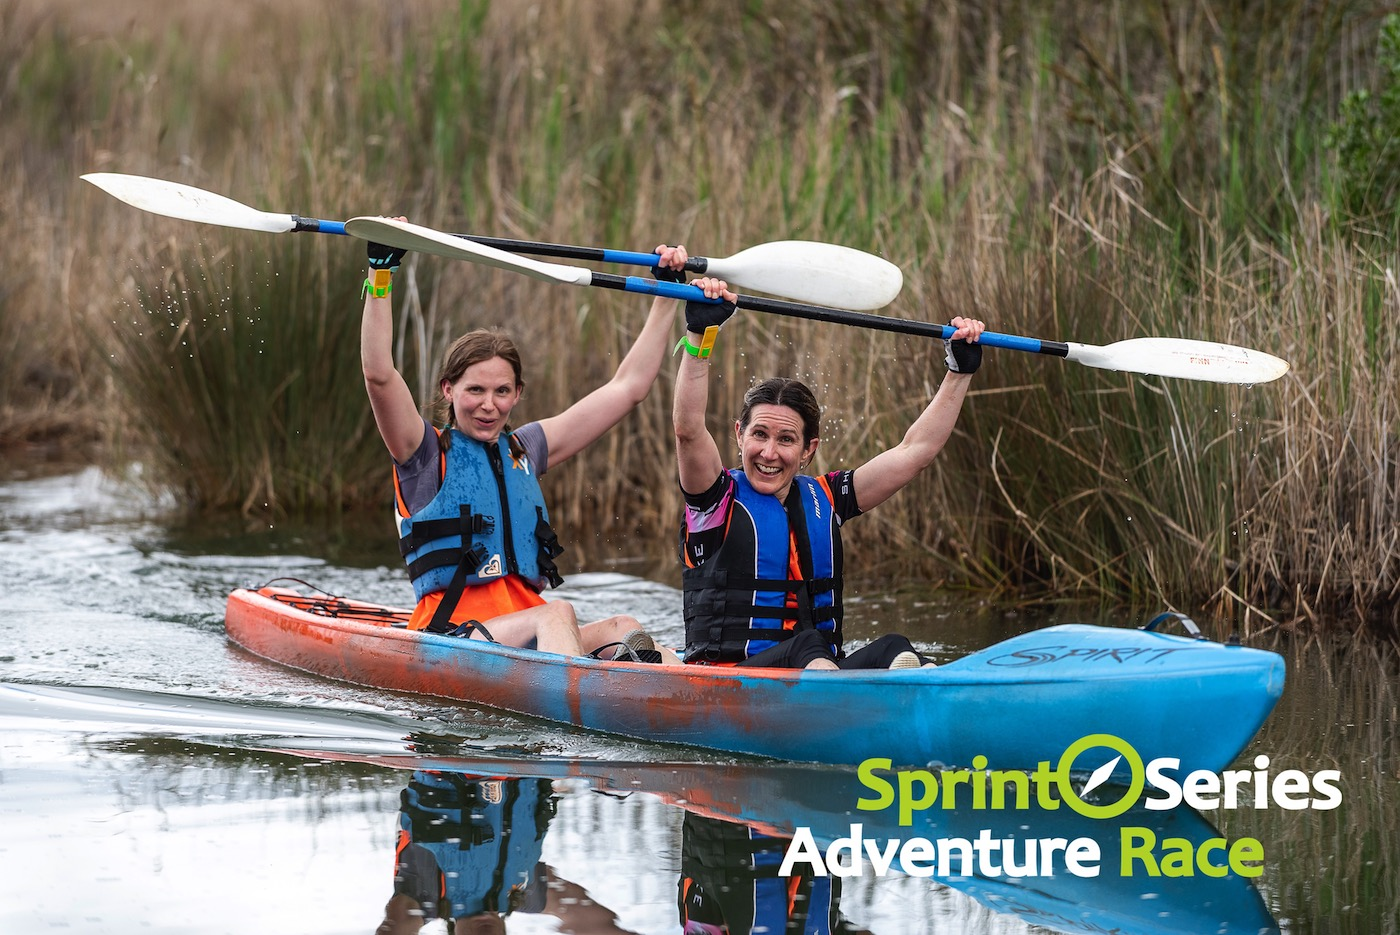 sprint series adventure race kayaking